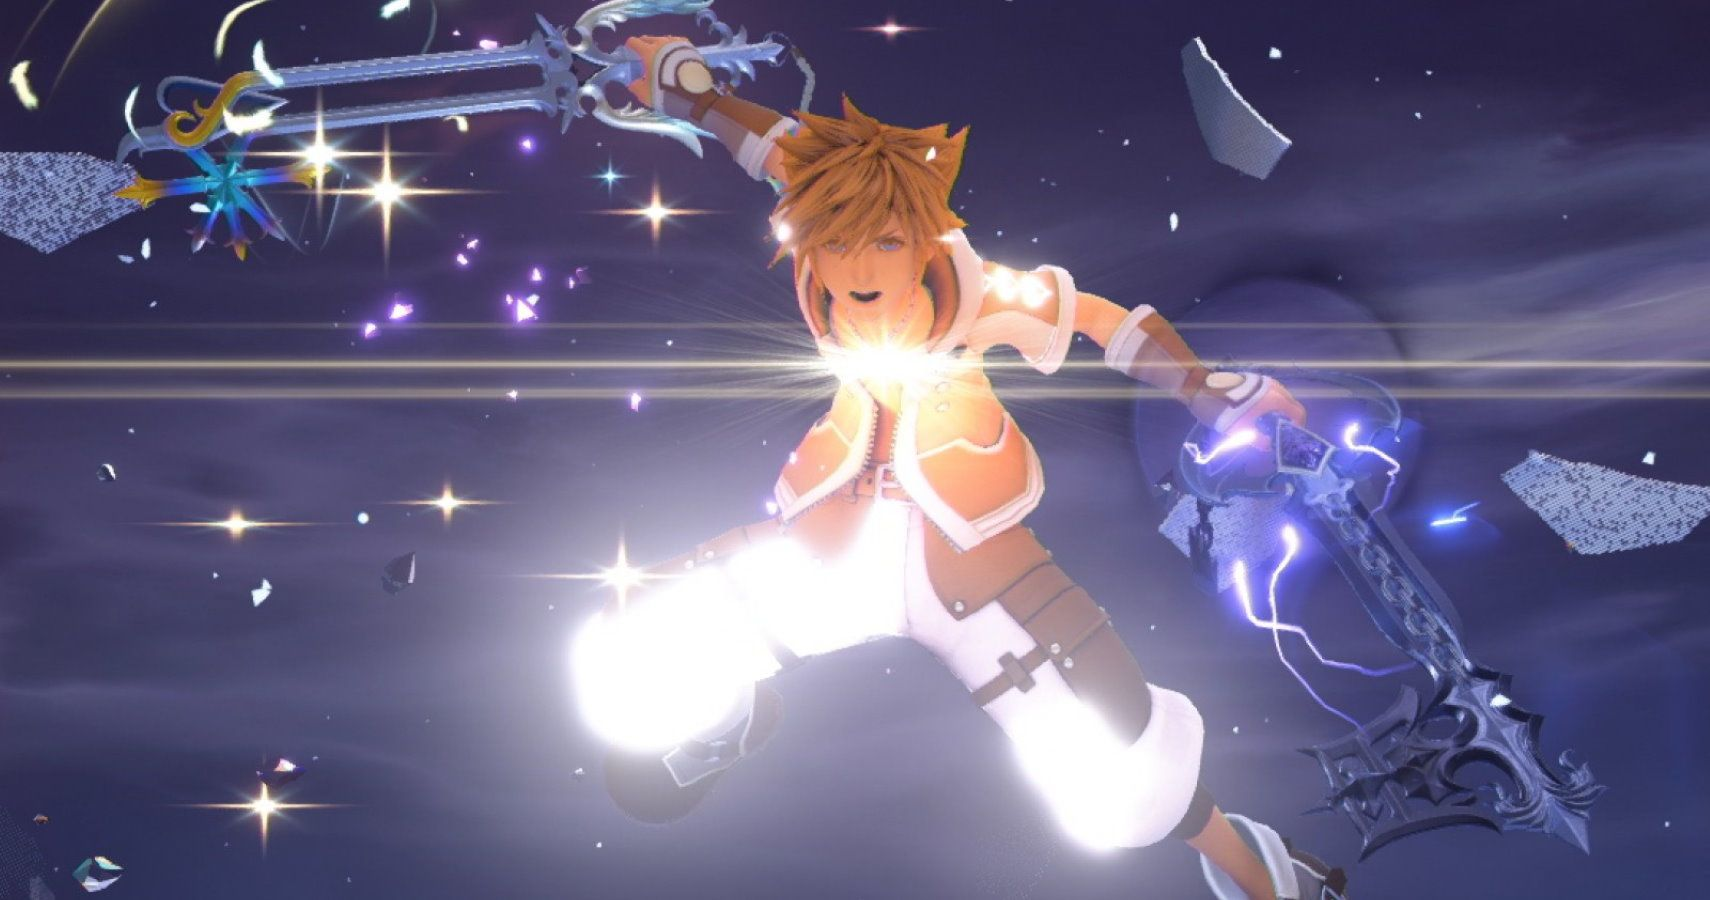 Kingdom Hearts 3 ReMind: How To Obtain The Oathkeeper Keyblade